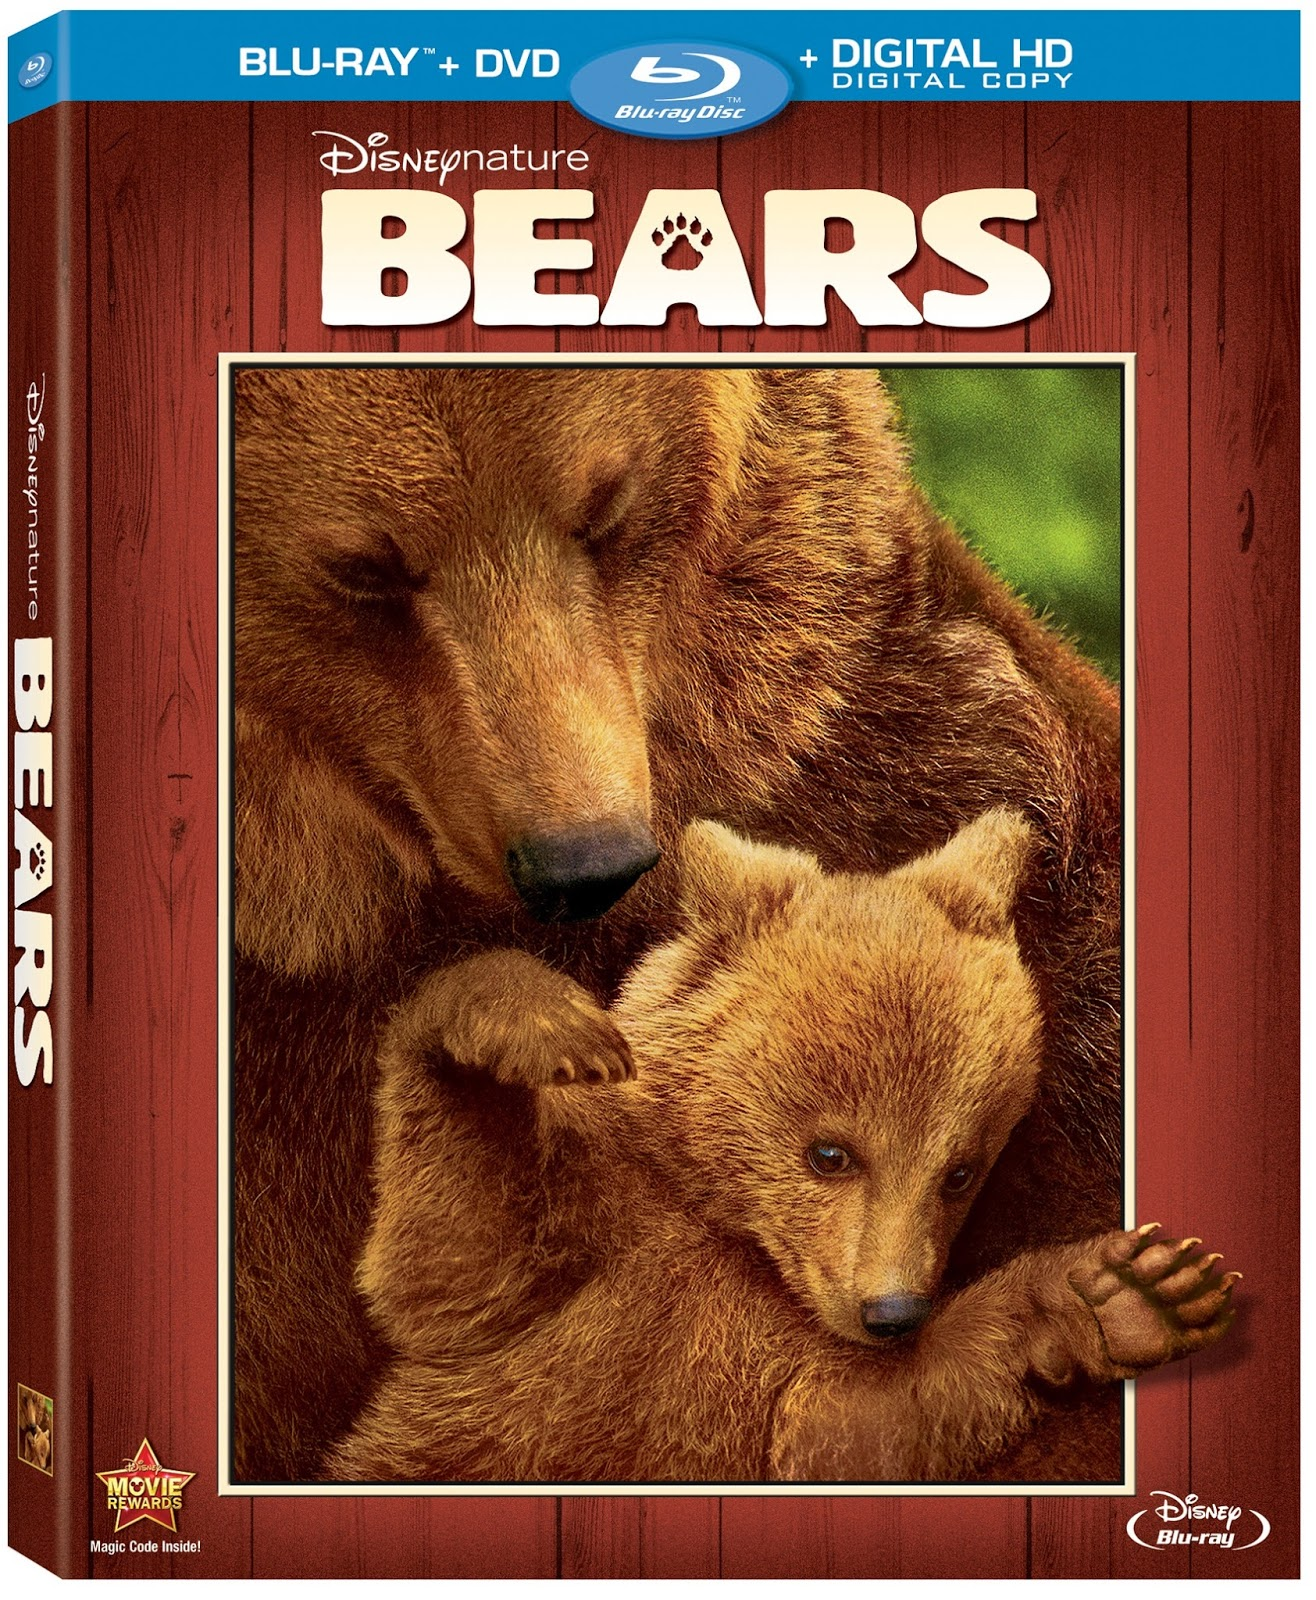 Bears+Disneynature+Released+Blu-ray+Combo+August+2014